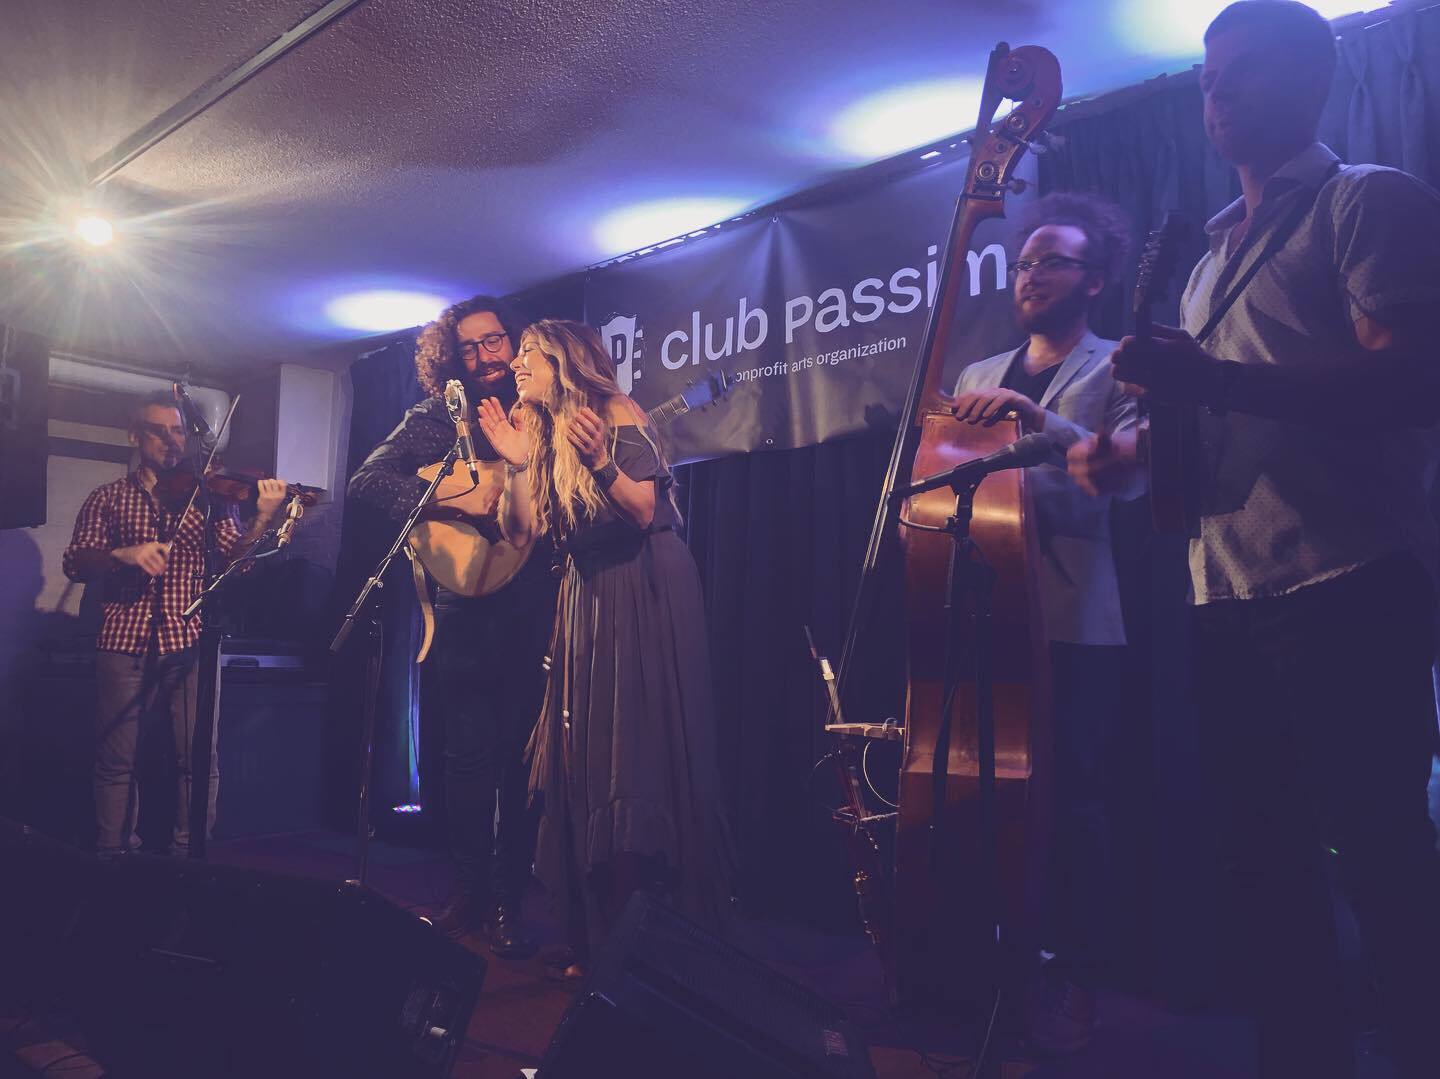 Club Passim (Cambridge MA)